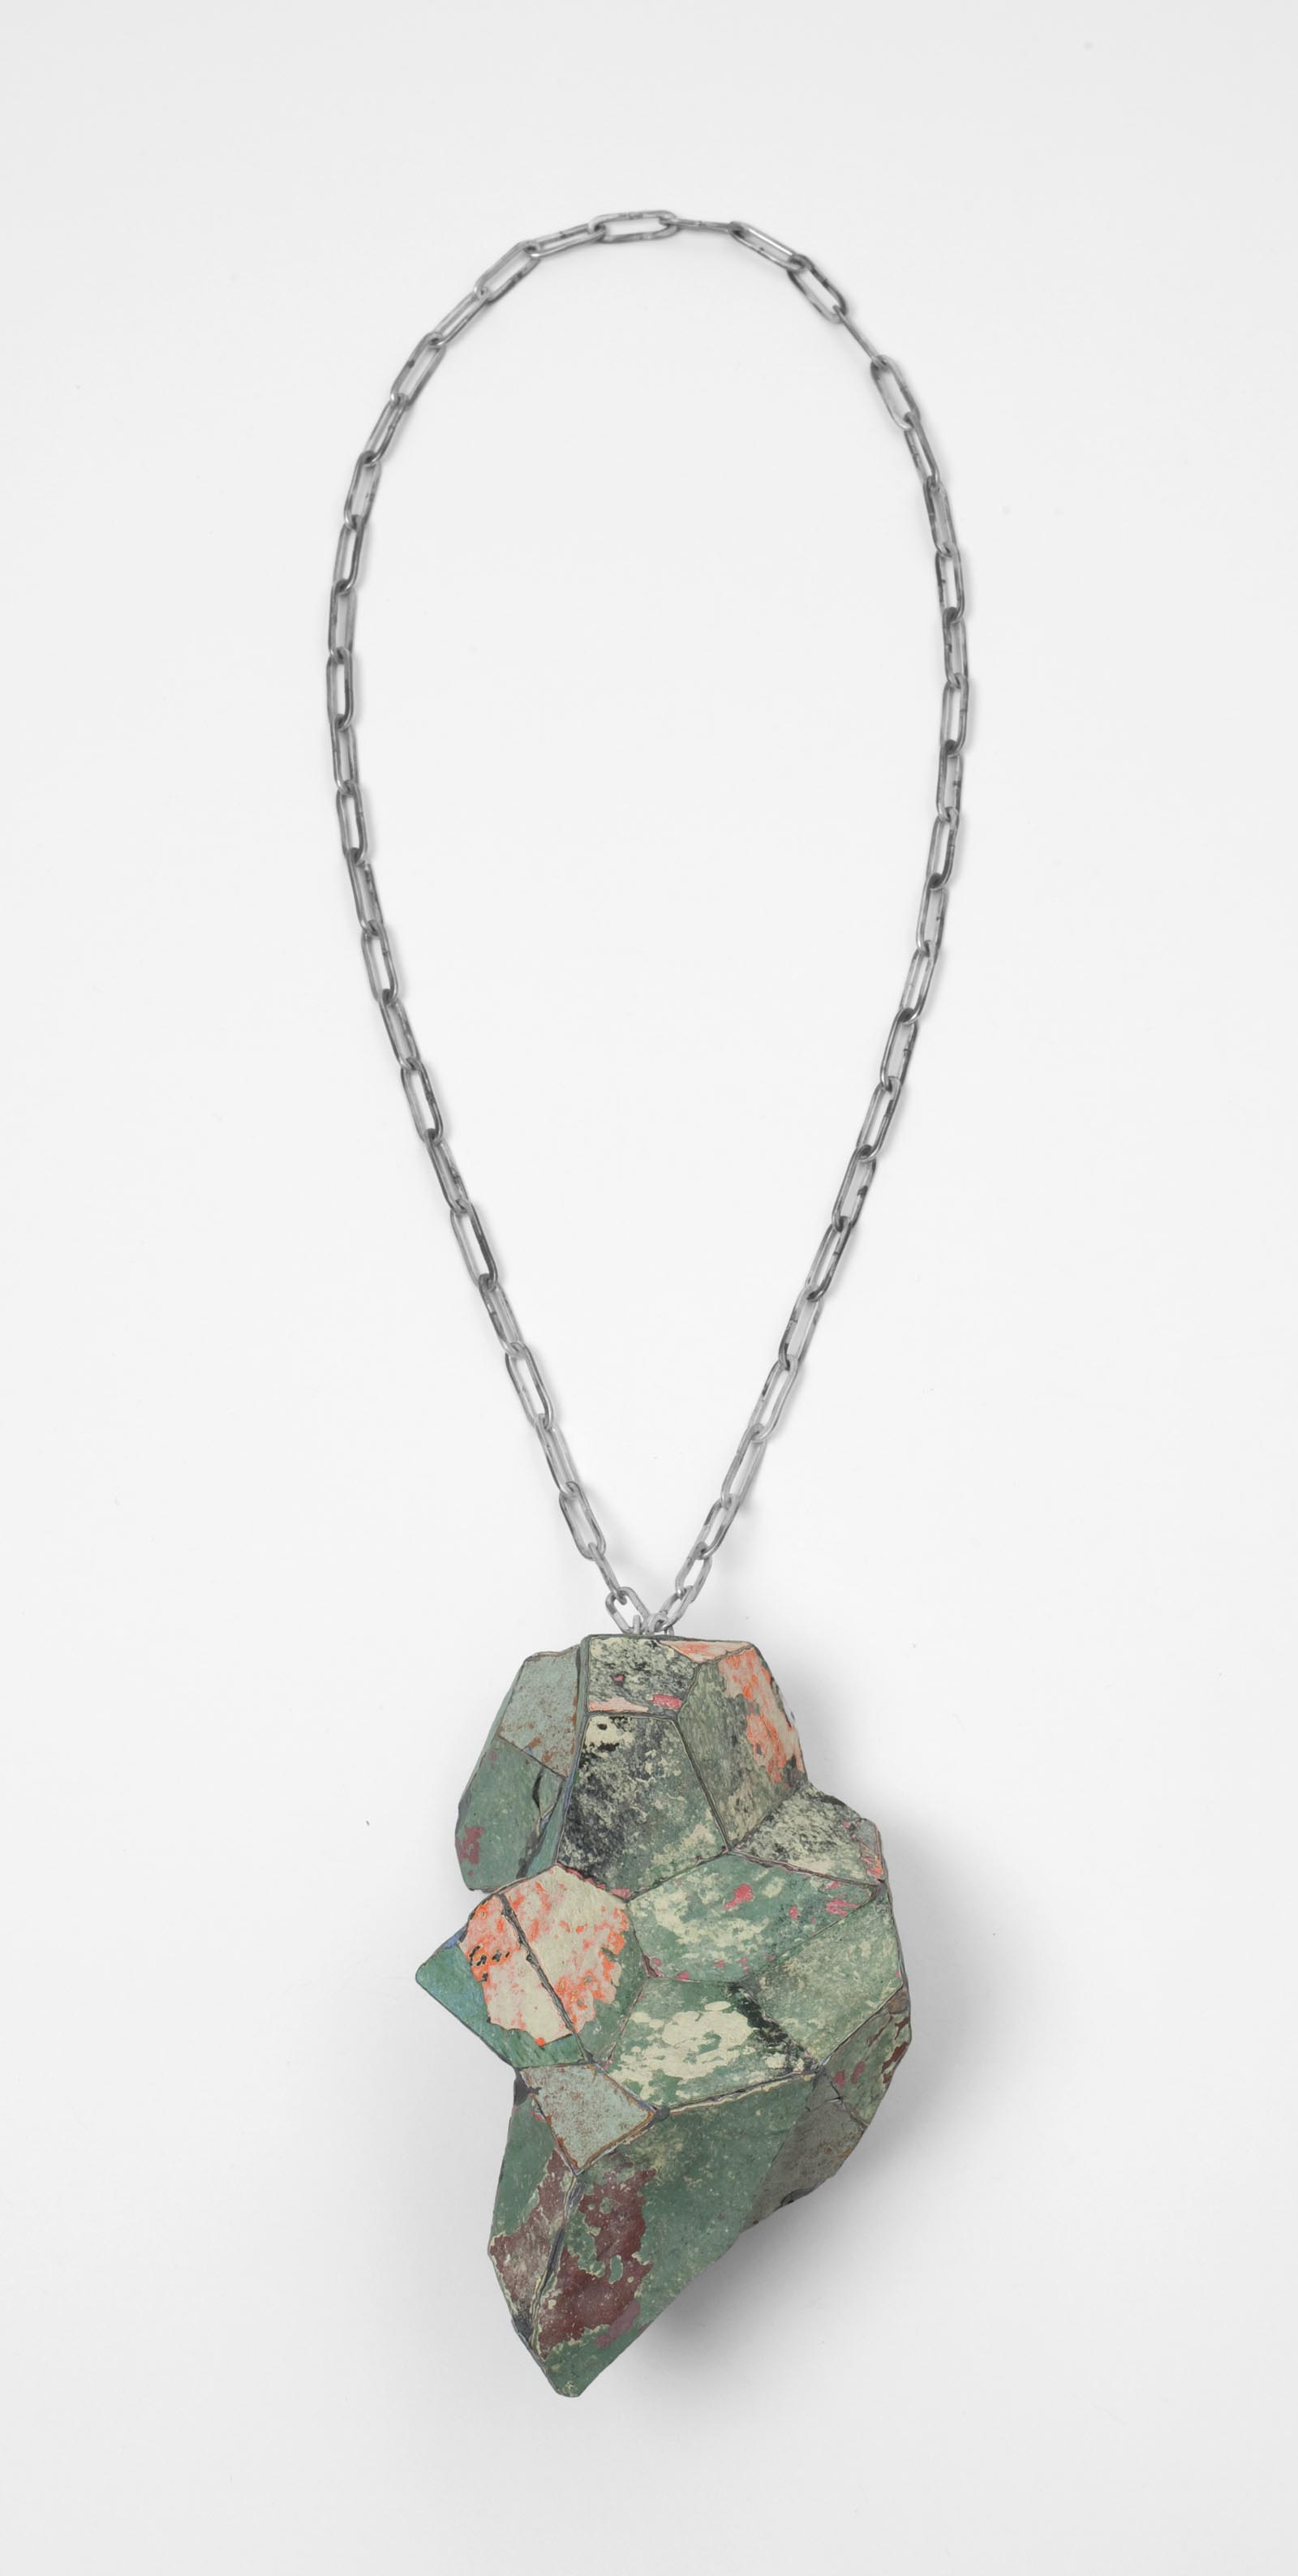 """Stained Green"" I Necklace, 2012 I Graffiti, silver I Photo: Mirei Takeuchi"